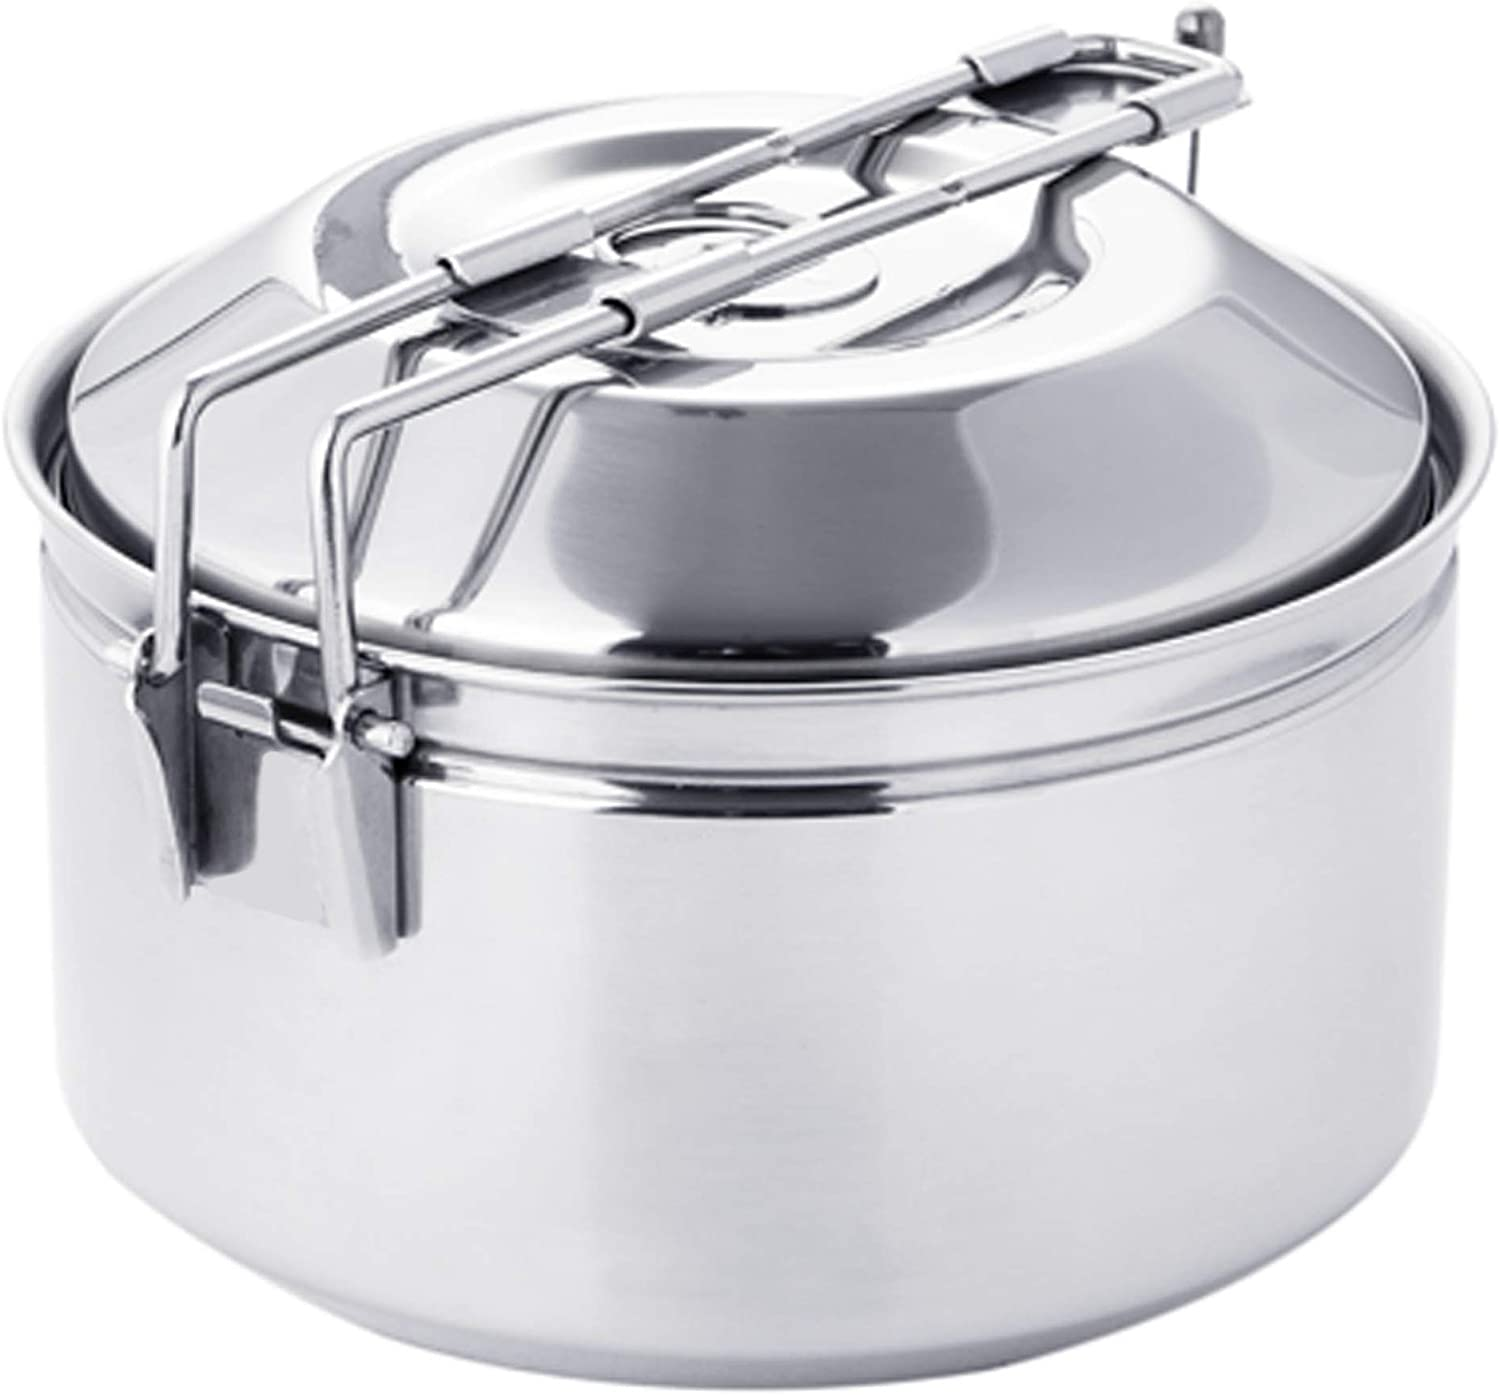 Fire-Maple Antarcti Stainless Steel Cook Pot w Locking Lid 1 Liter Pot Portable for Camping and Travel Works on Open Campfire and Stoves Premium Camp Cookware for Delicious Backcountry Meals